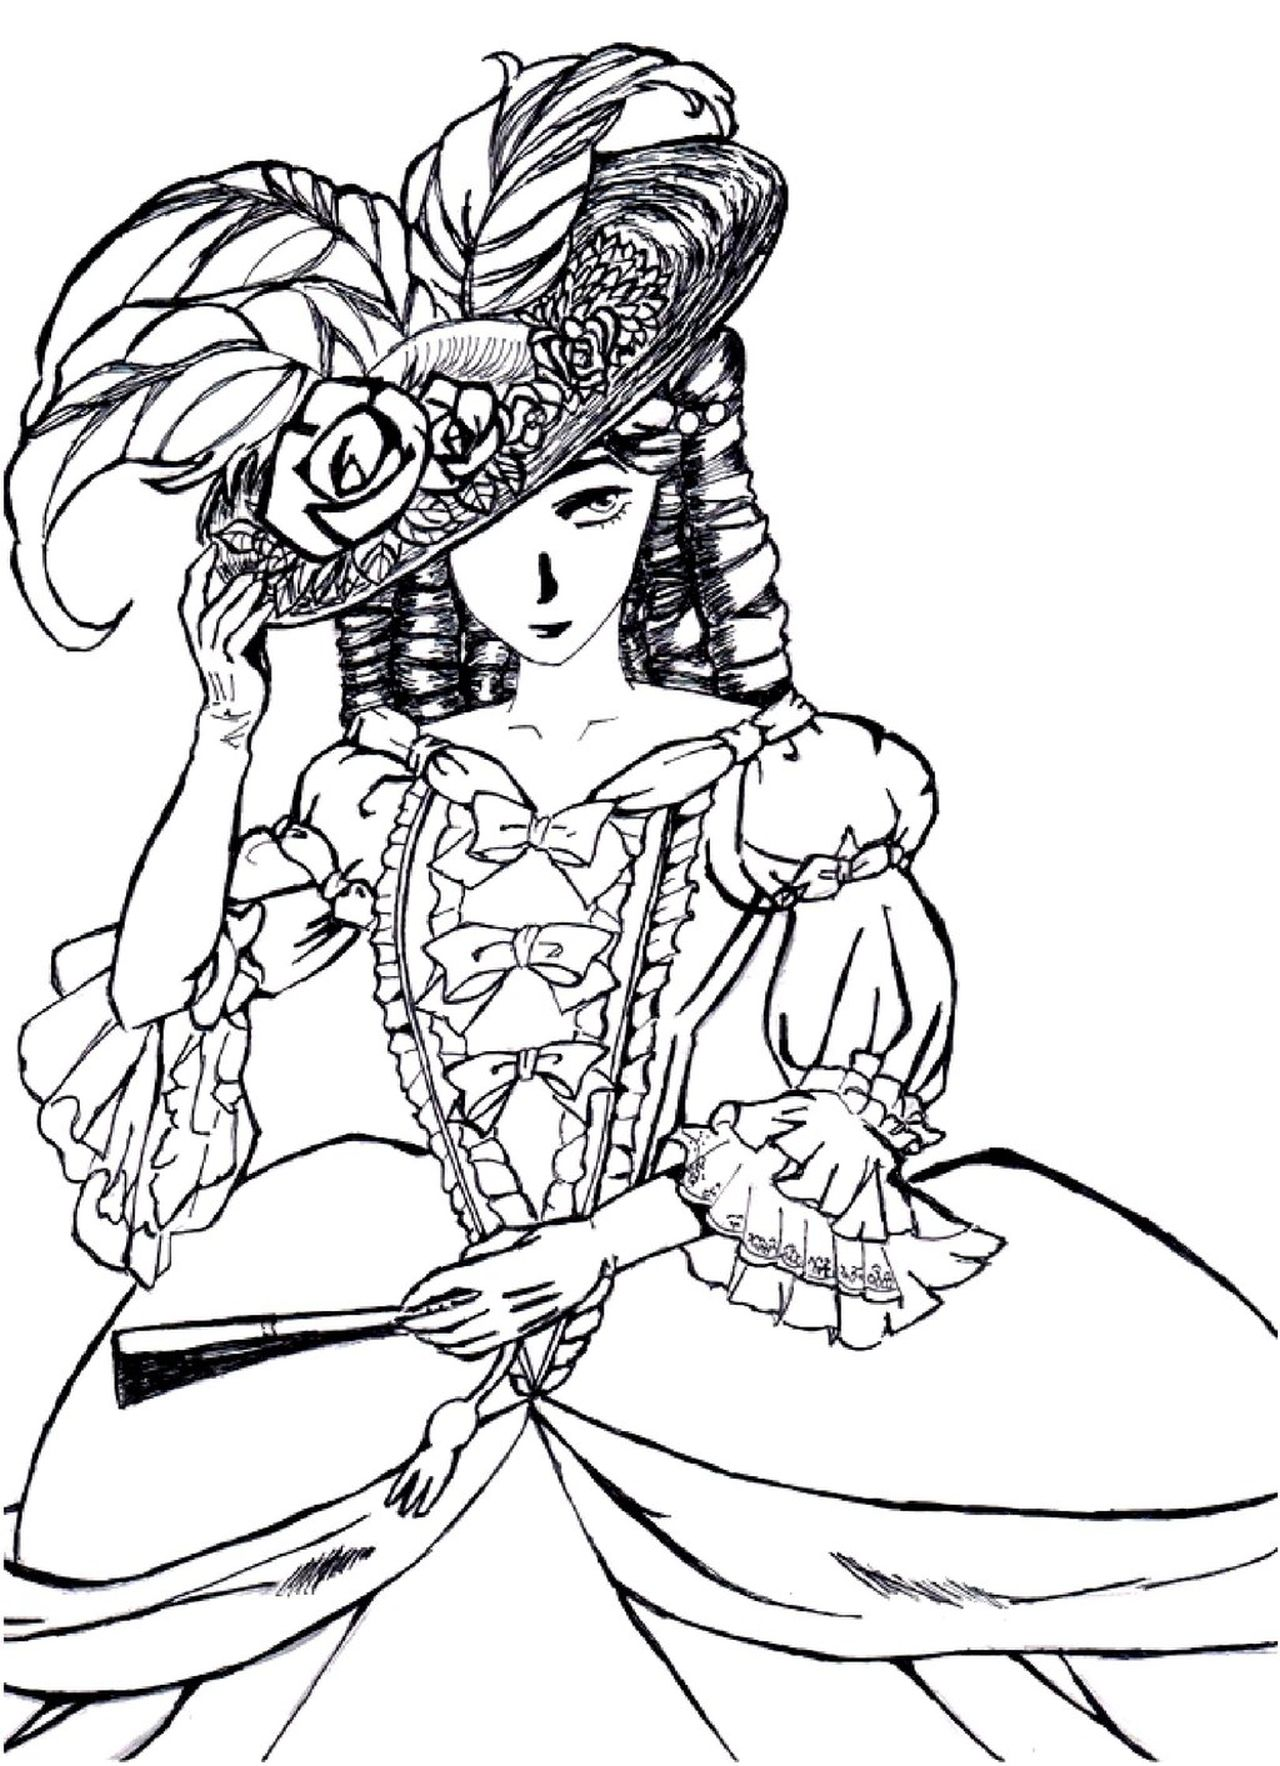 Victorian woman fashion dress hard coloring pages for grown ups